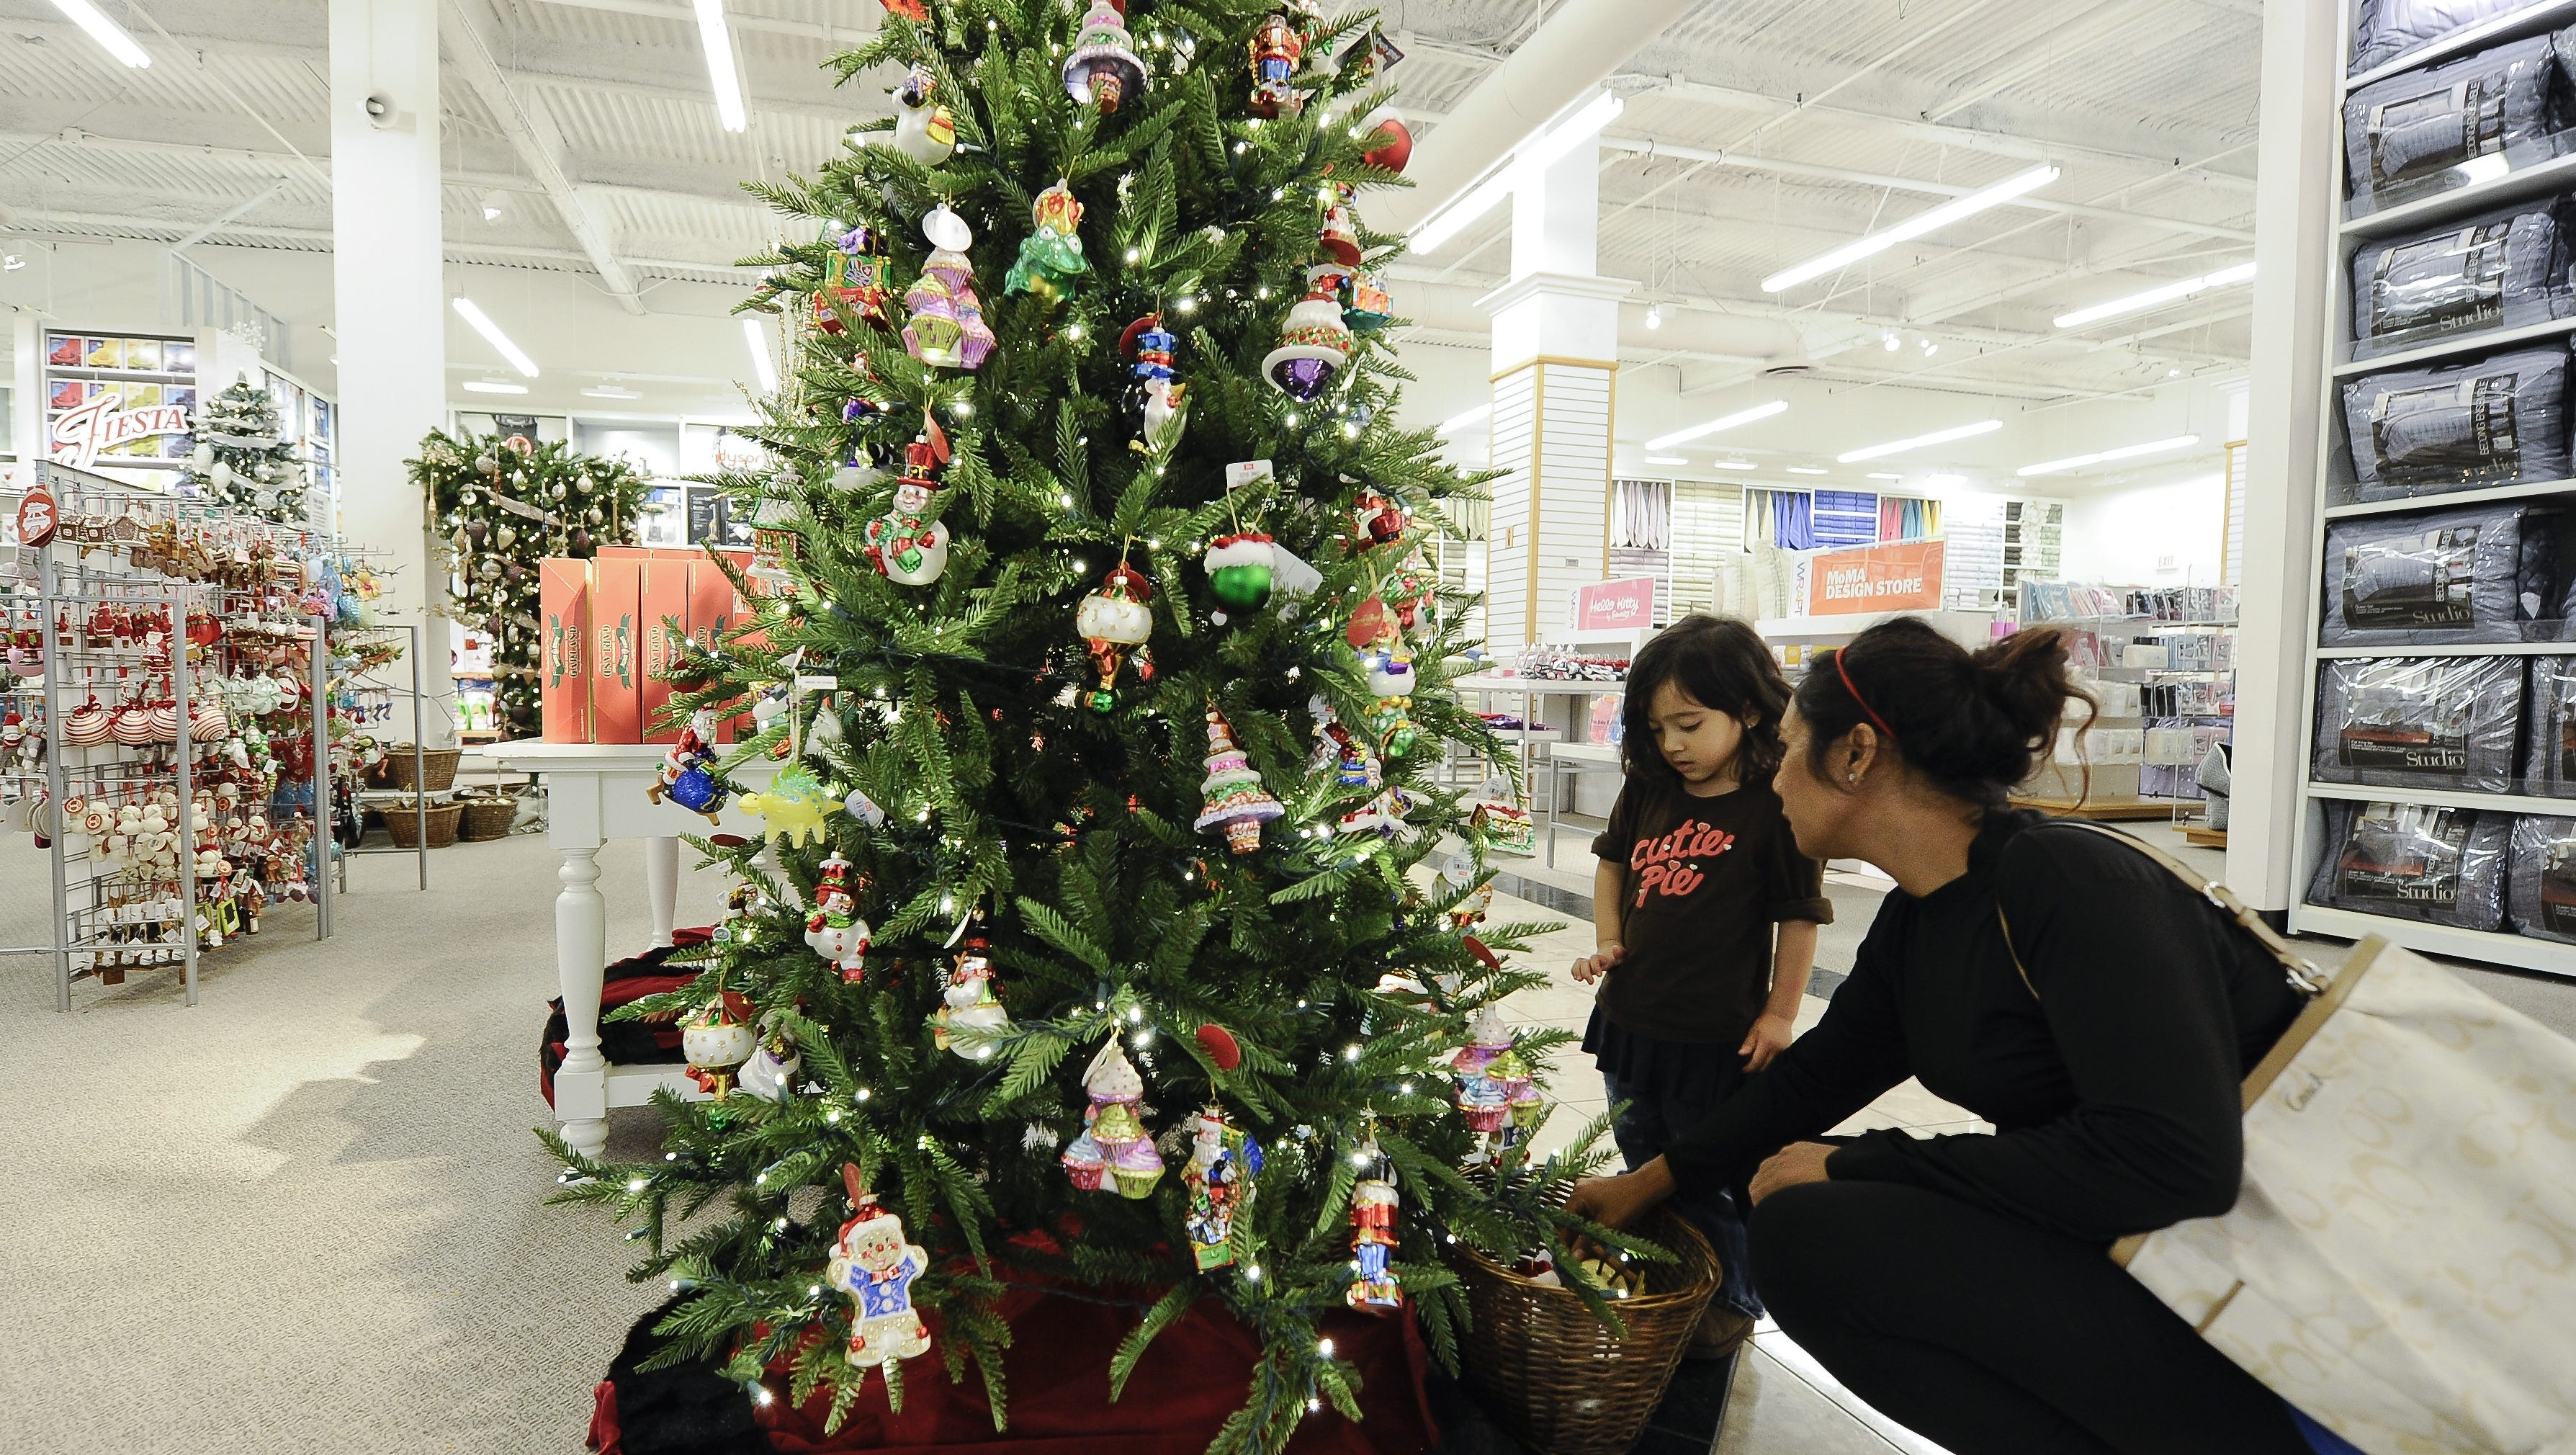 J C Penney Says Holiday Prices Will Be Lowest Ever